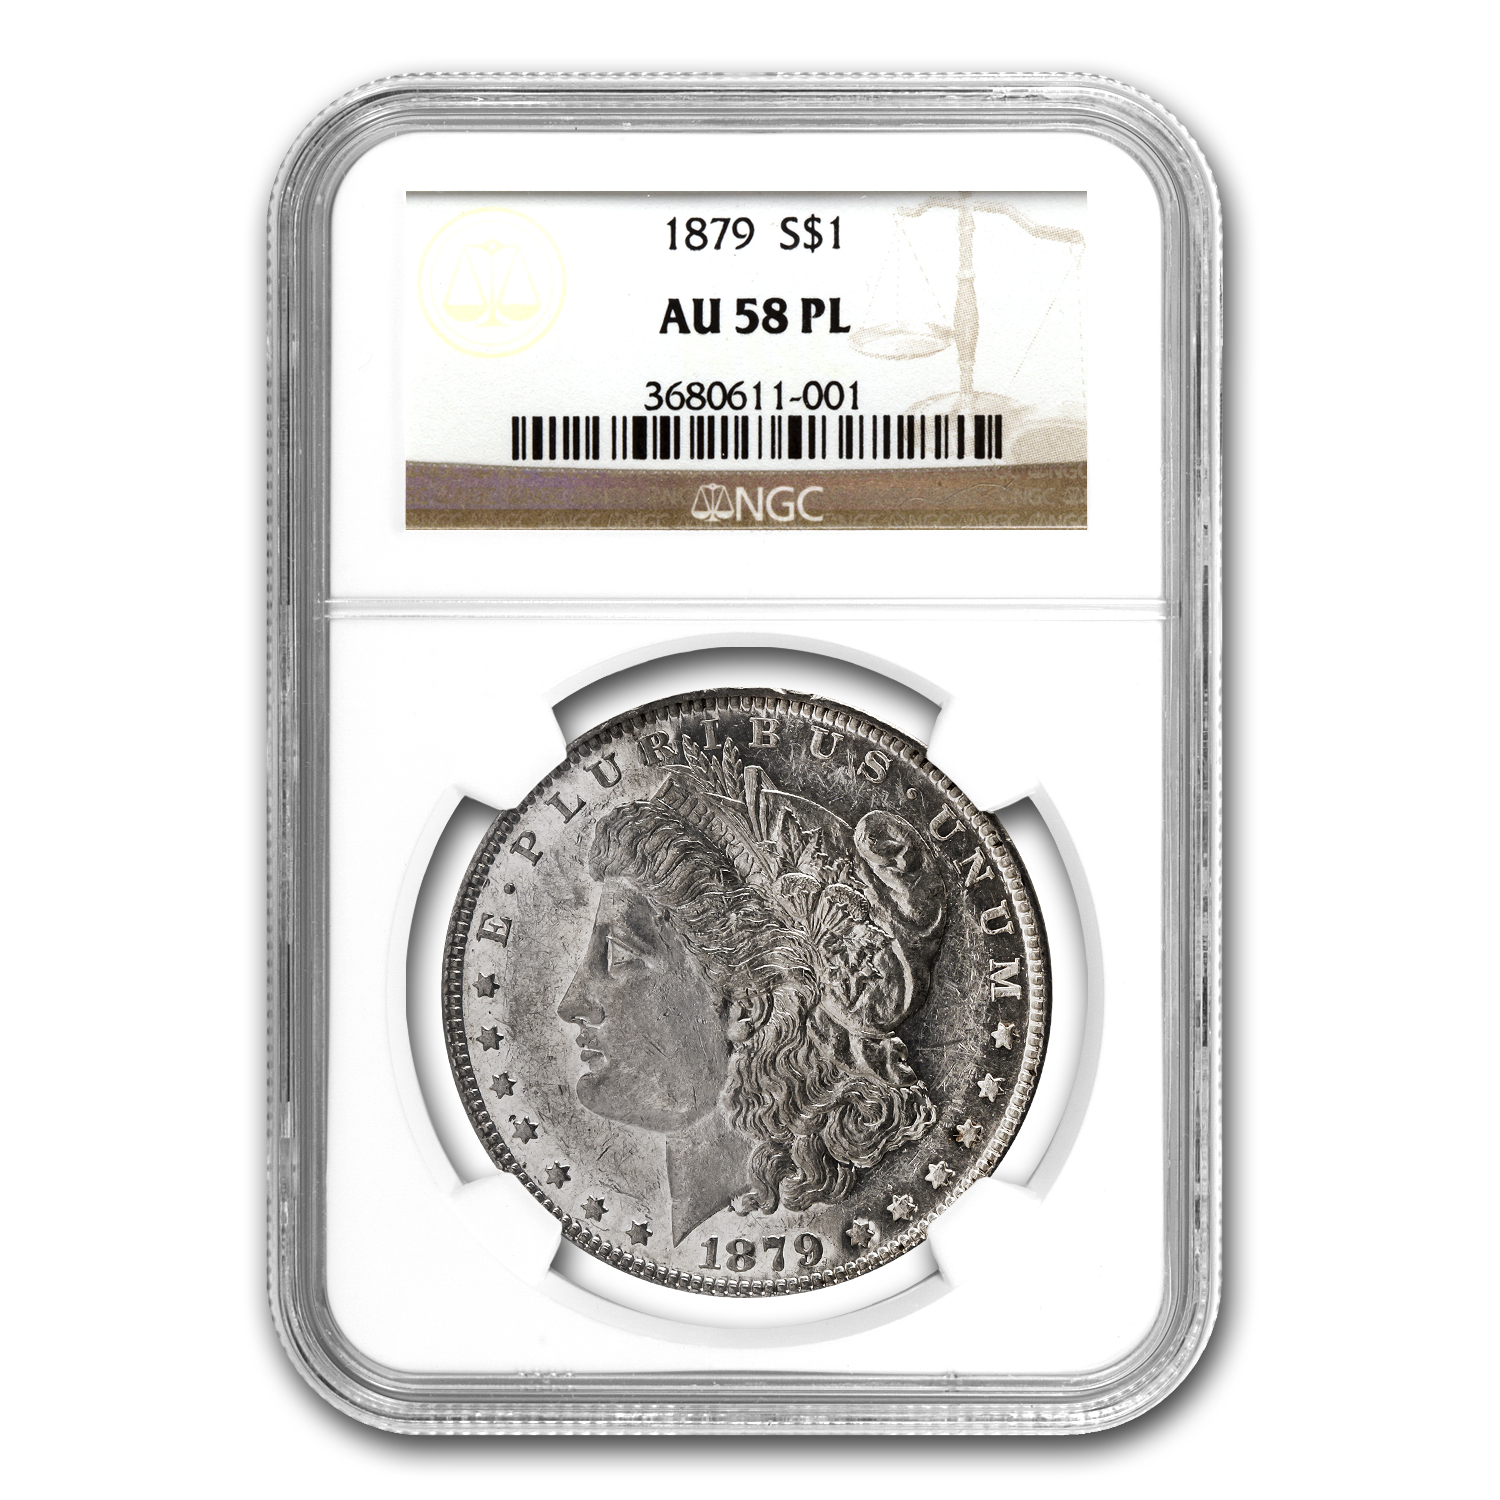 1879 Morgan Dollar AU-58 PL Proof Like NGC